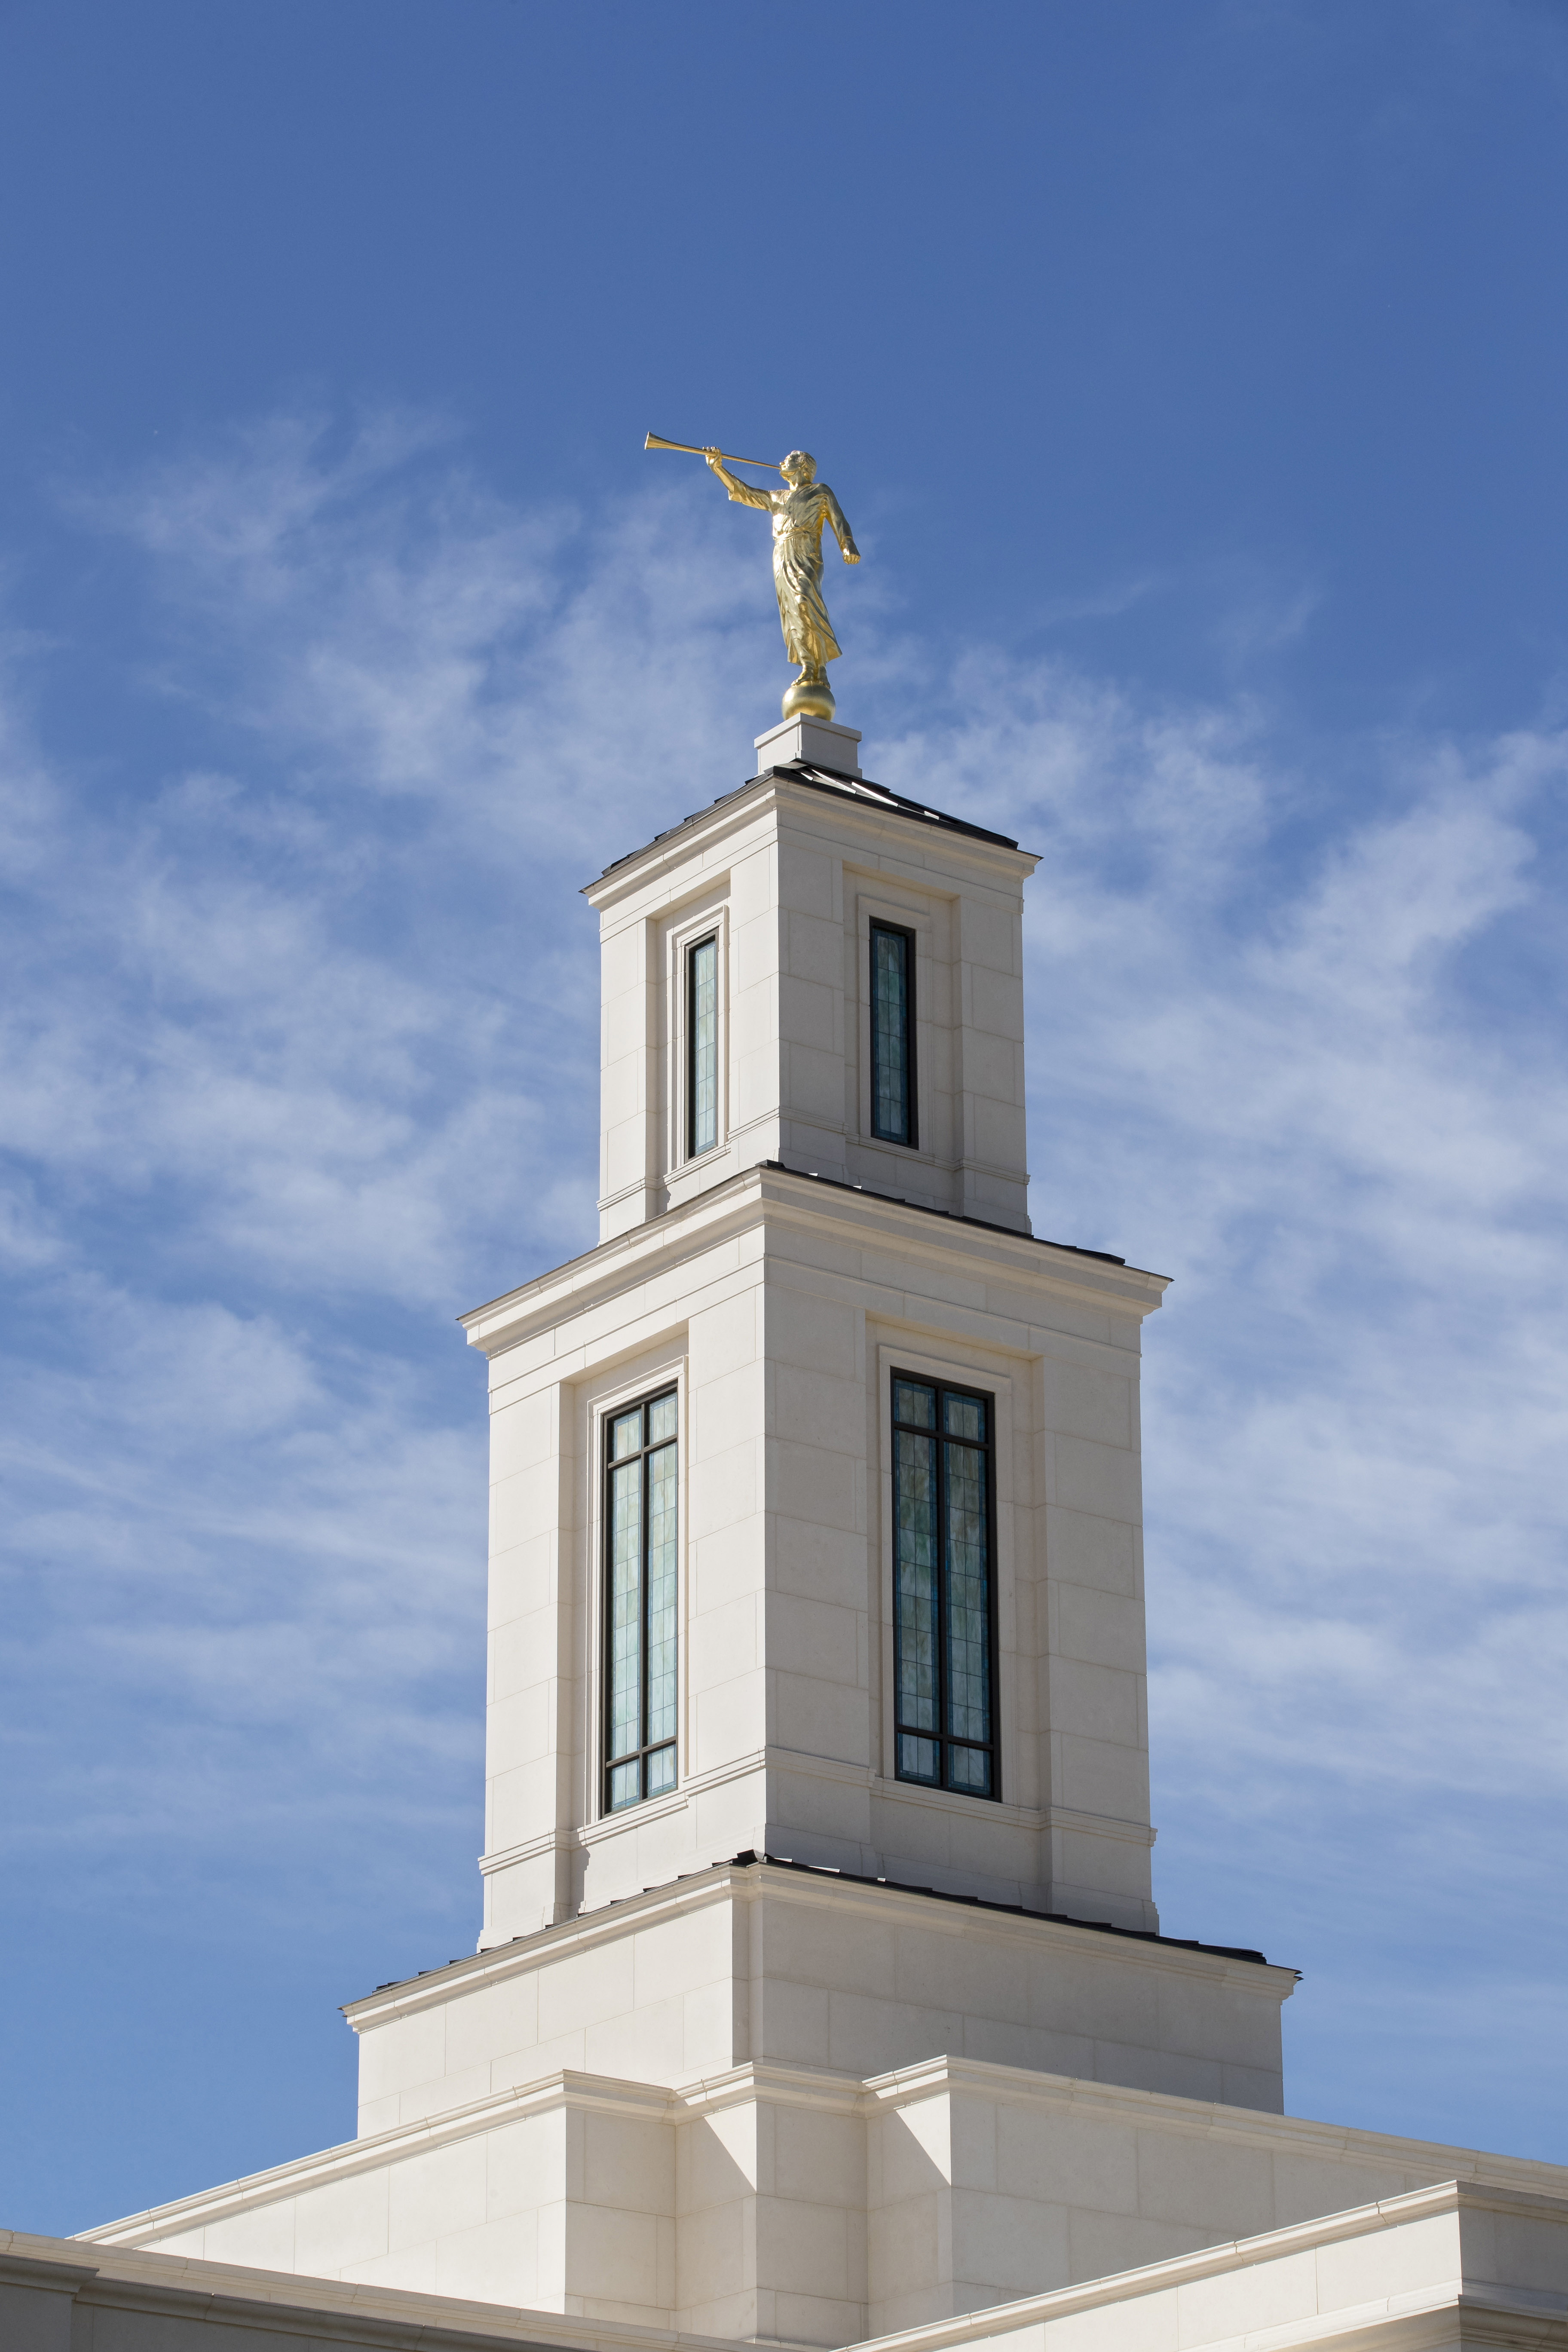 A gold-leafed statue representative of the ancient Book of Mormon prophet Moroni stands atop the Oklahoma City Oklahoma Temple.